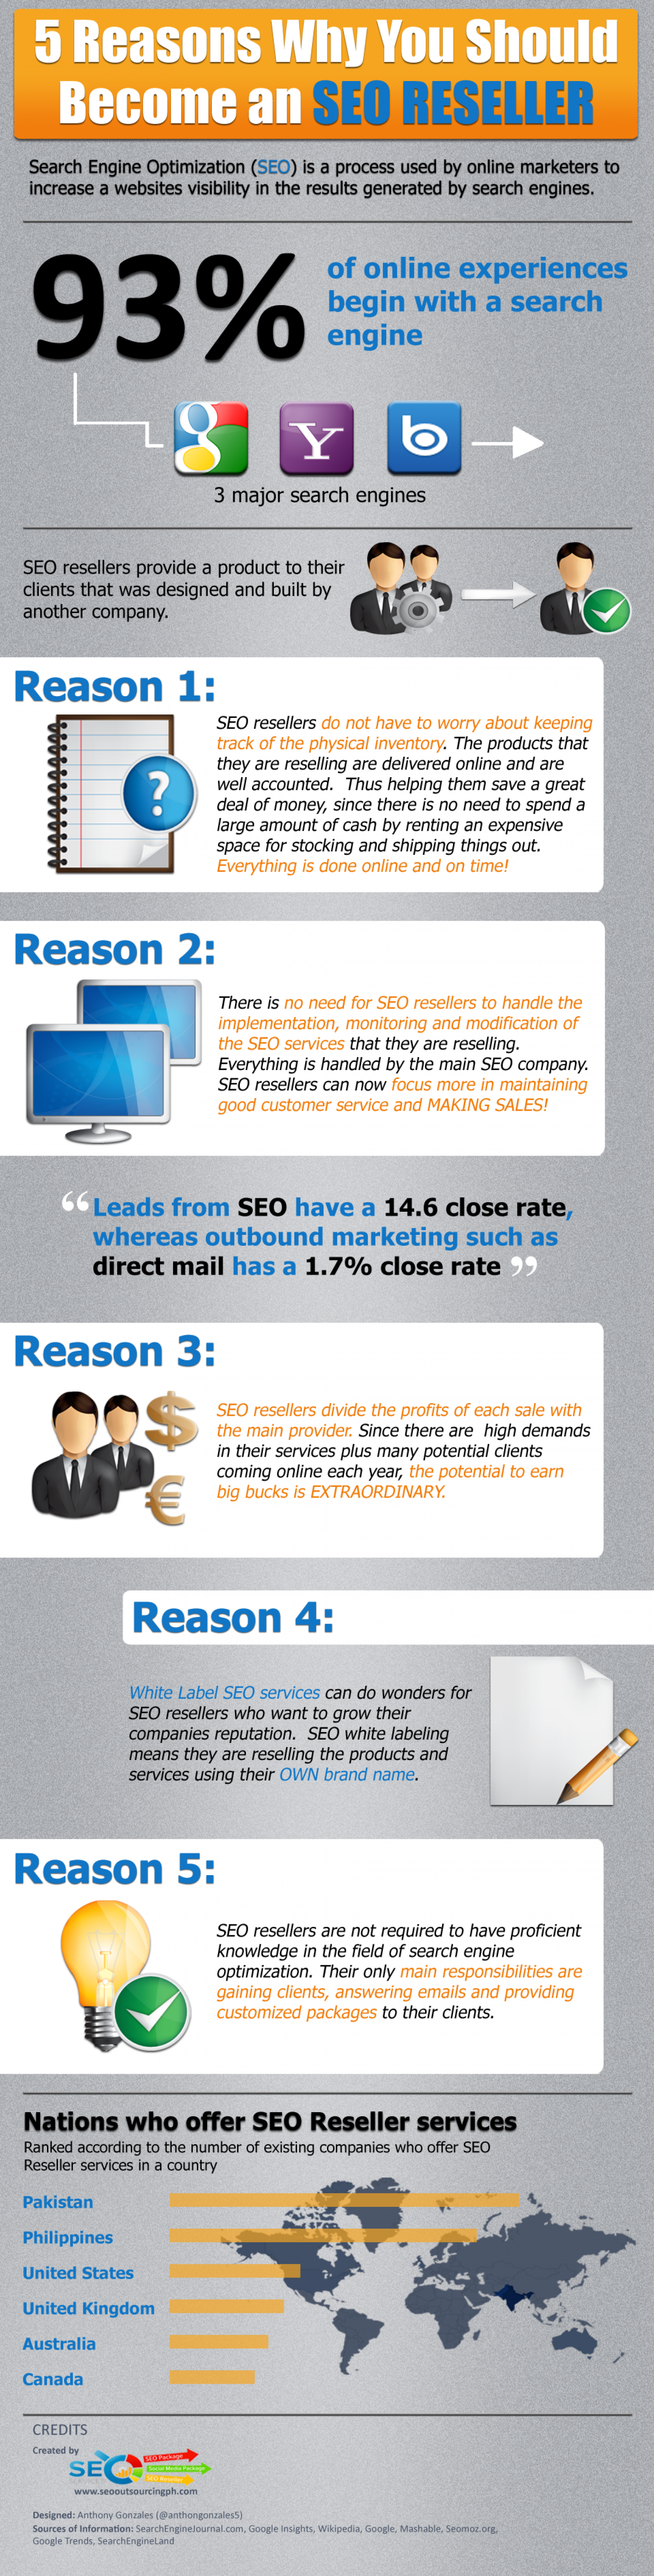 5 Reasons Why You Should Become an SEO RESELLER Infographic